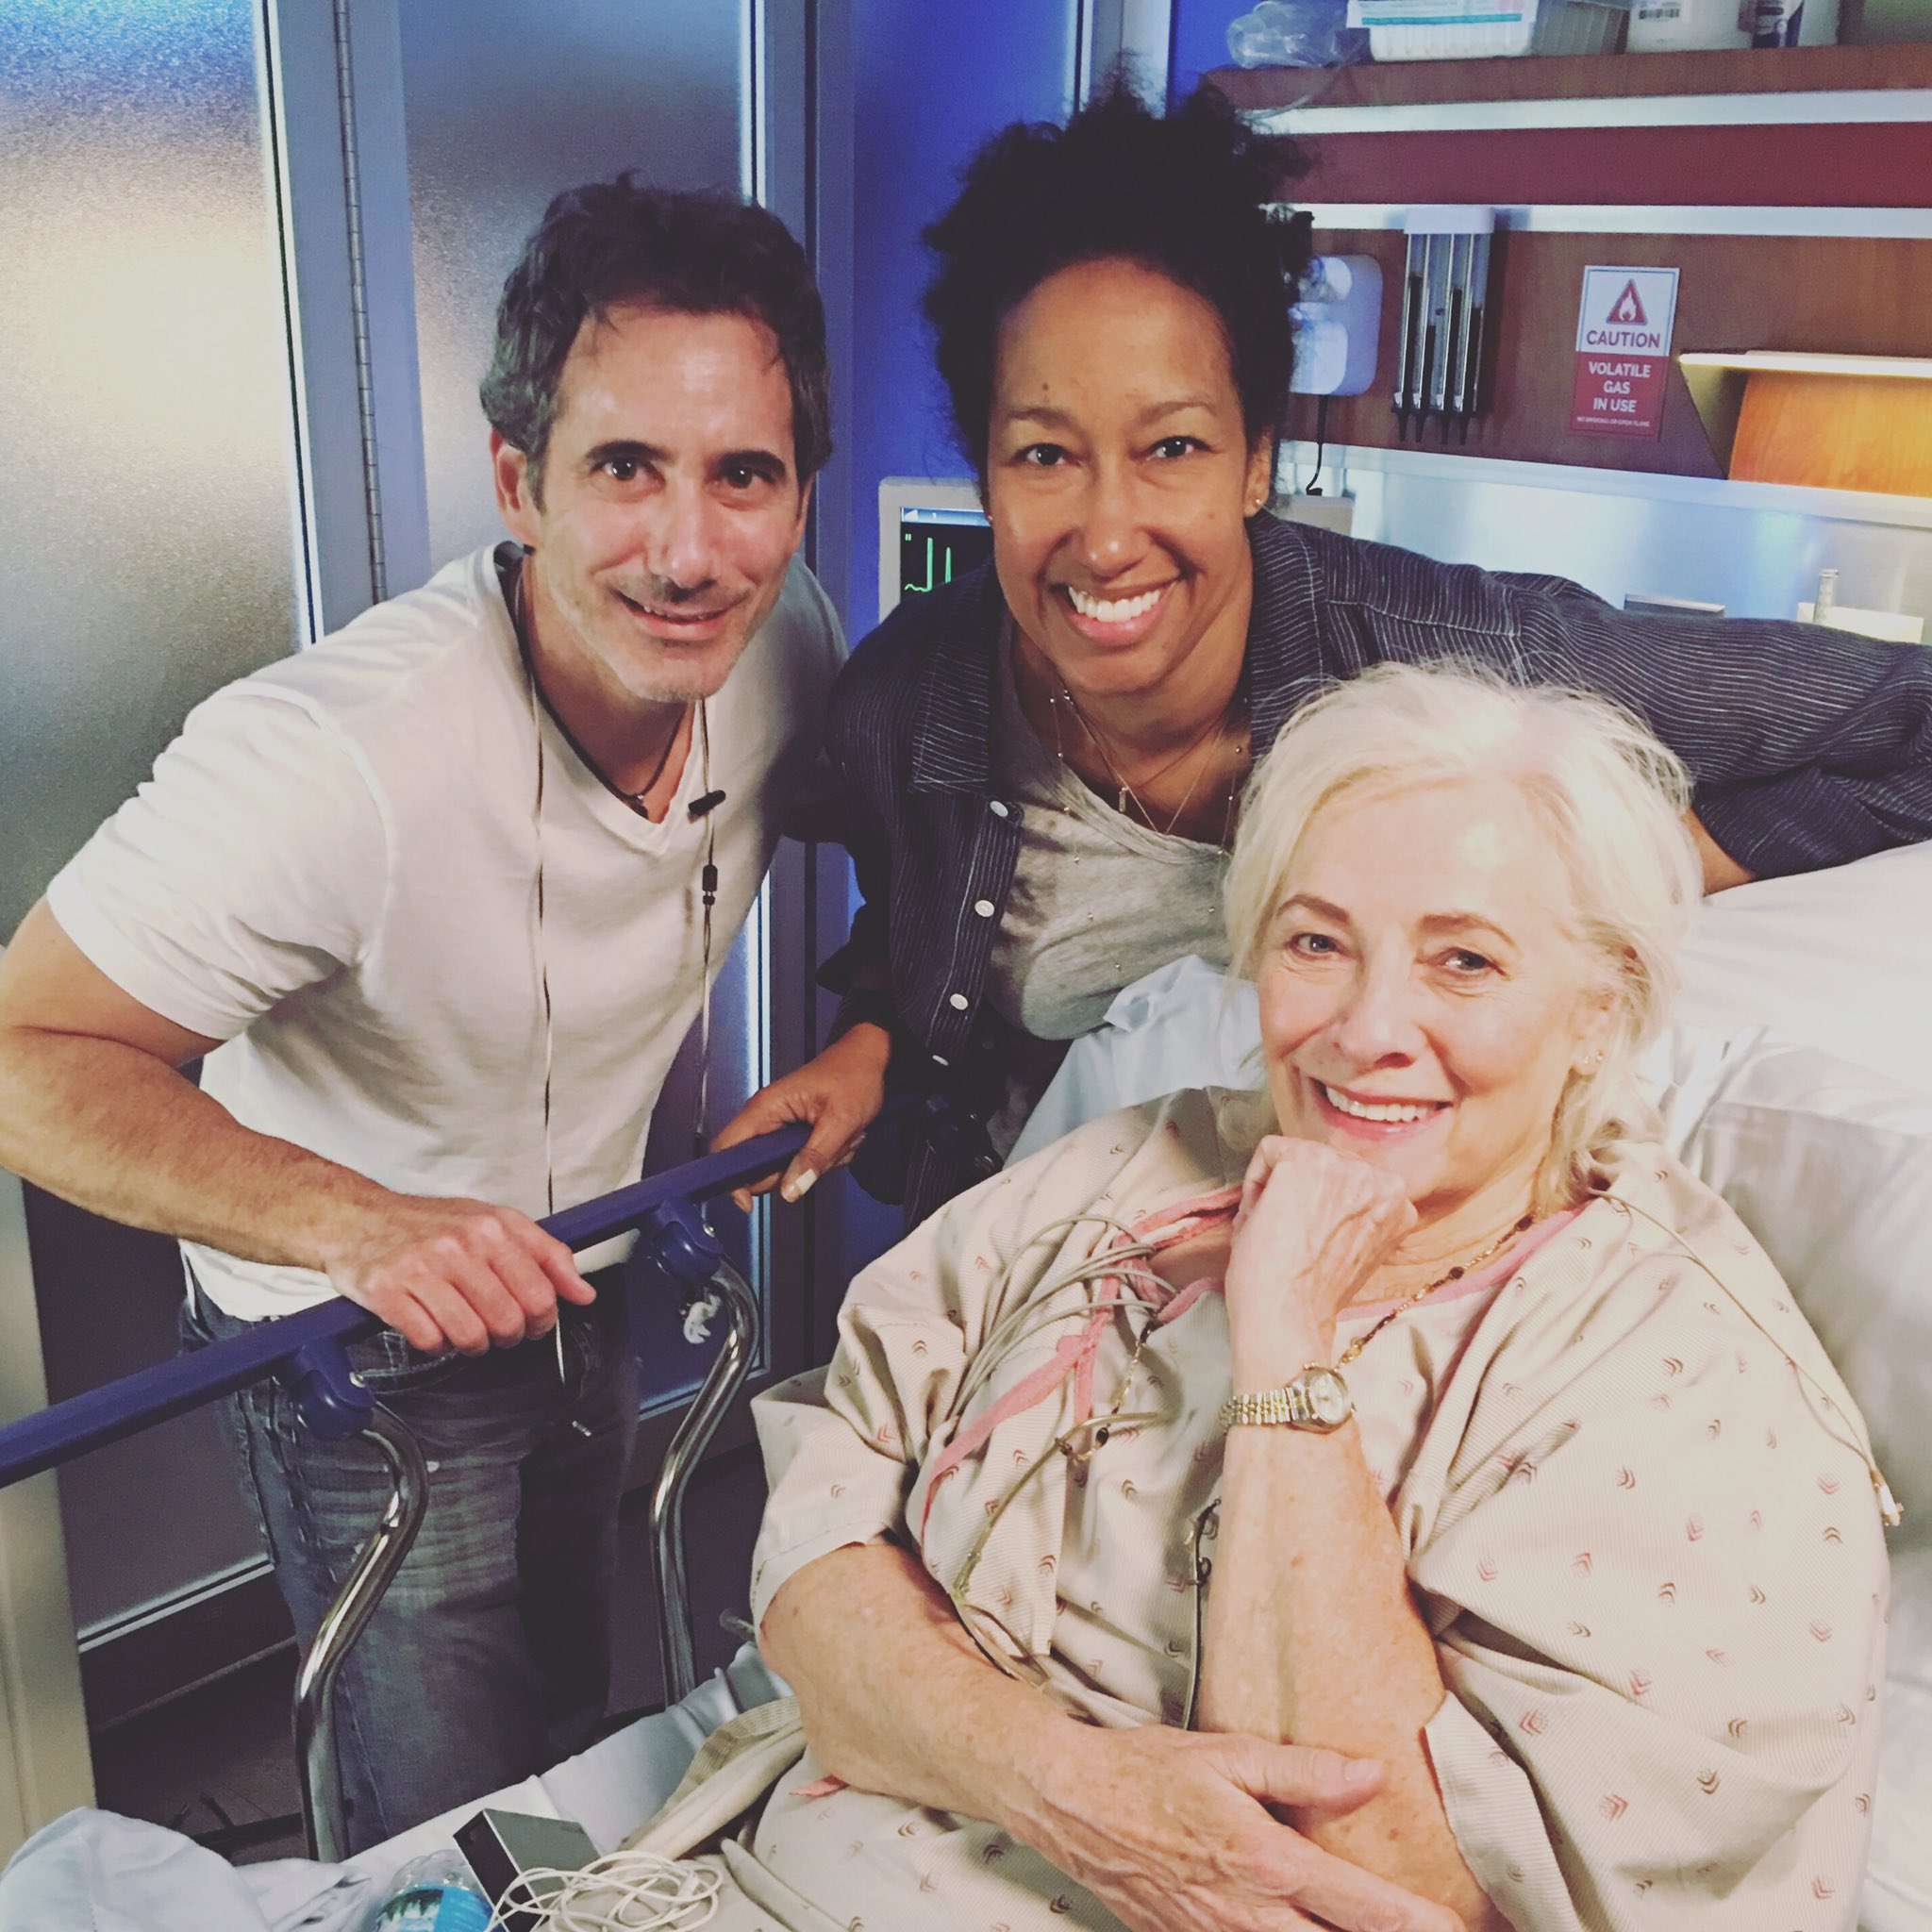 """Tonight #ChicagoMed encore of """"Extreme Measures"""" see @brian_tee go toe to toe with @BettyBuckley. I know who wins :) #OneChicago @1TallGrl https://t.co/A4iCpj03zB"""